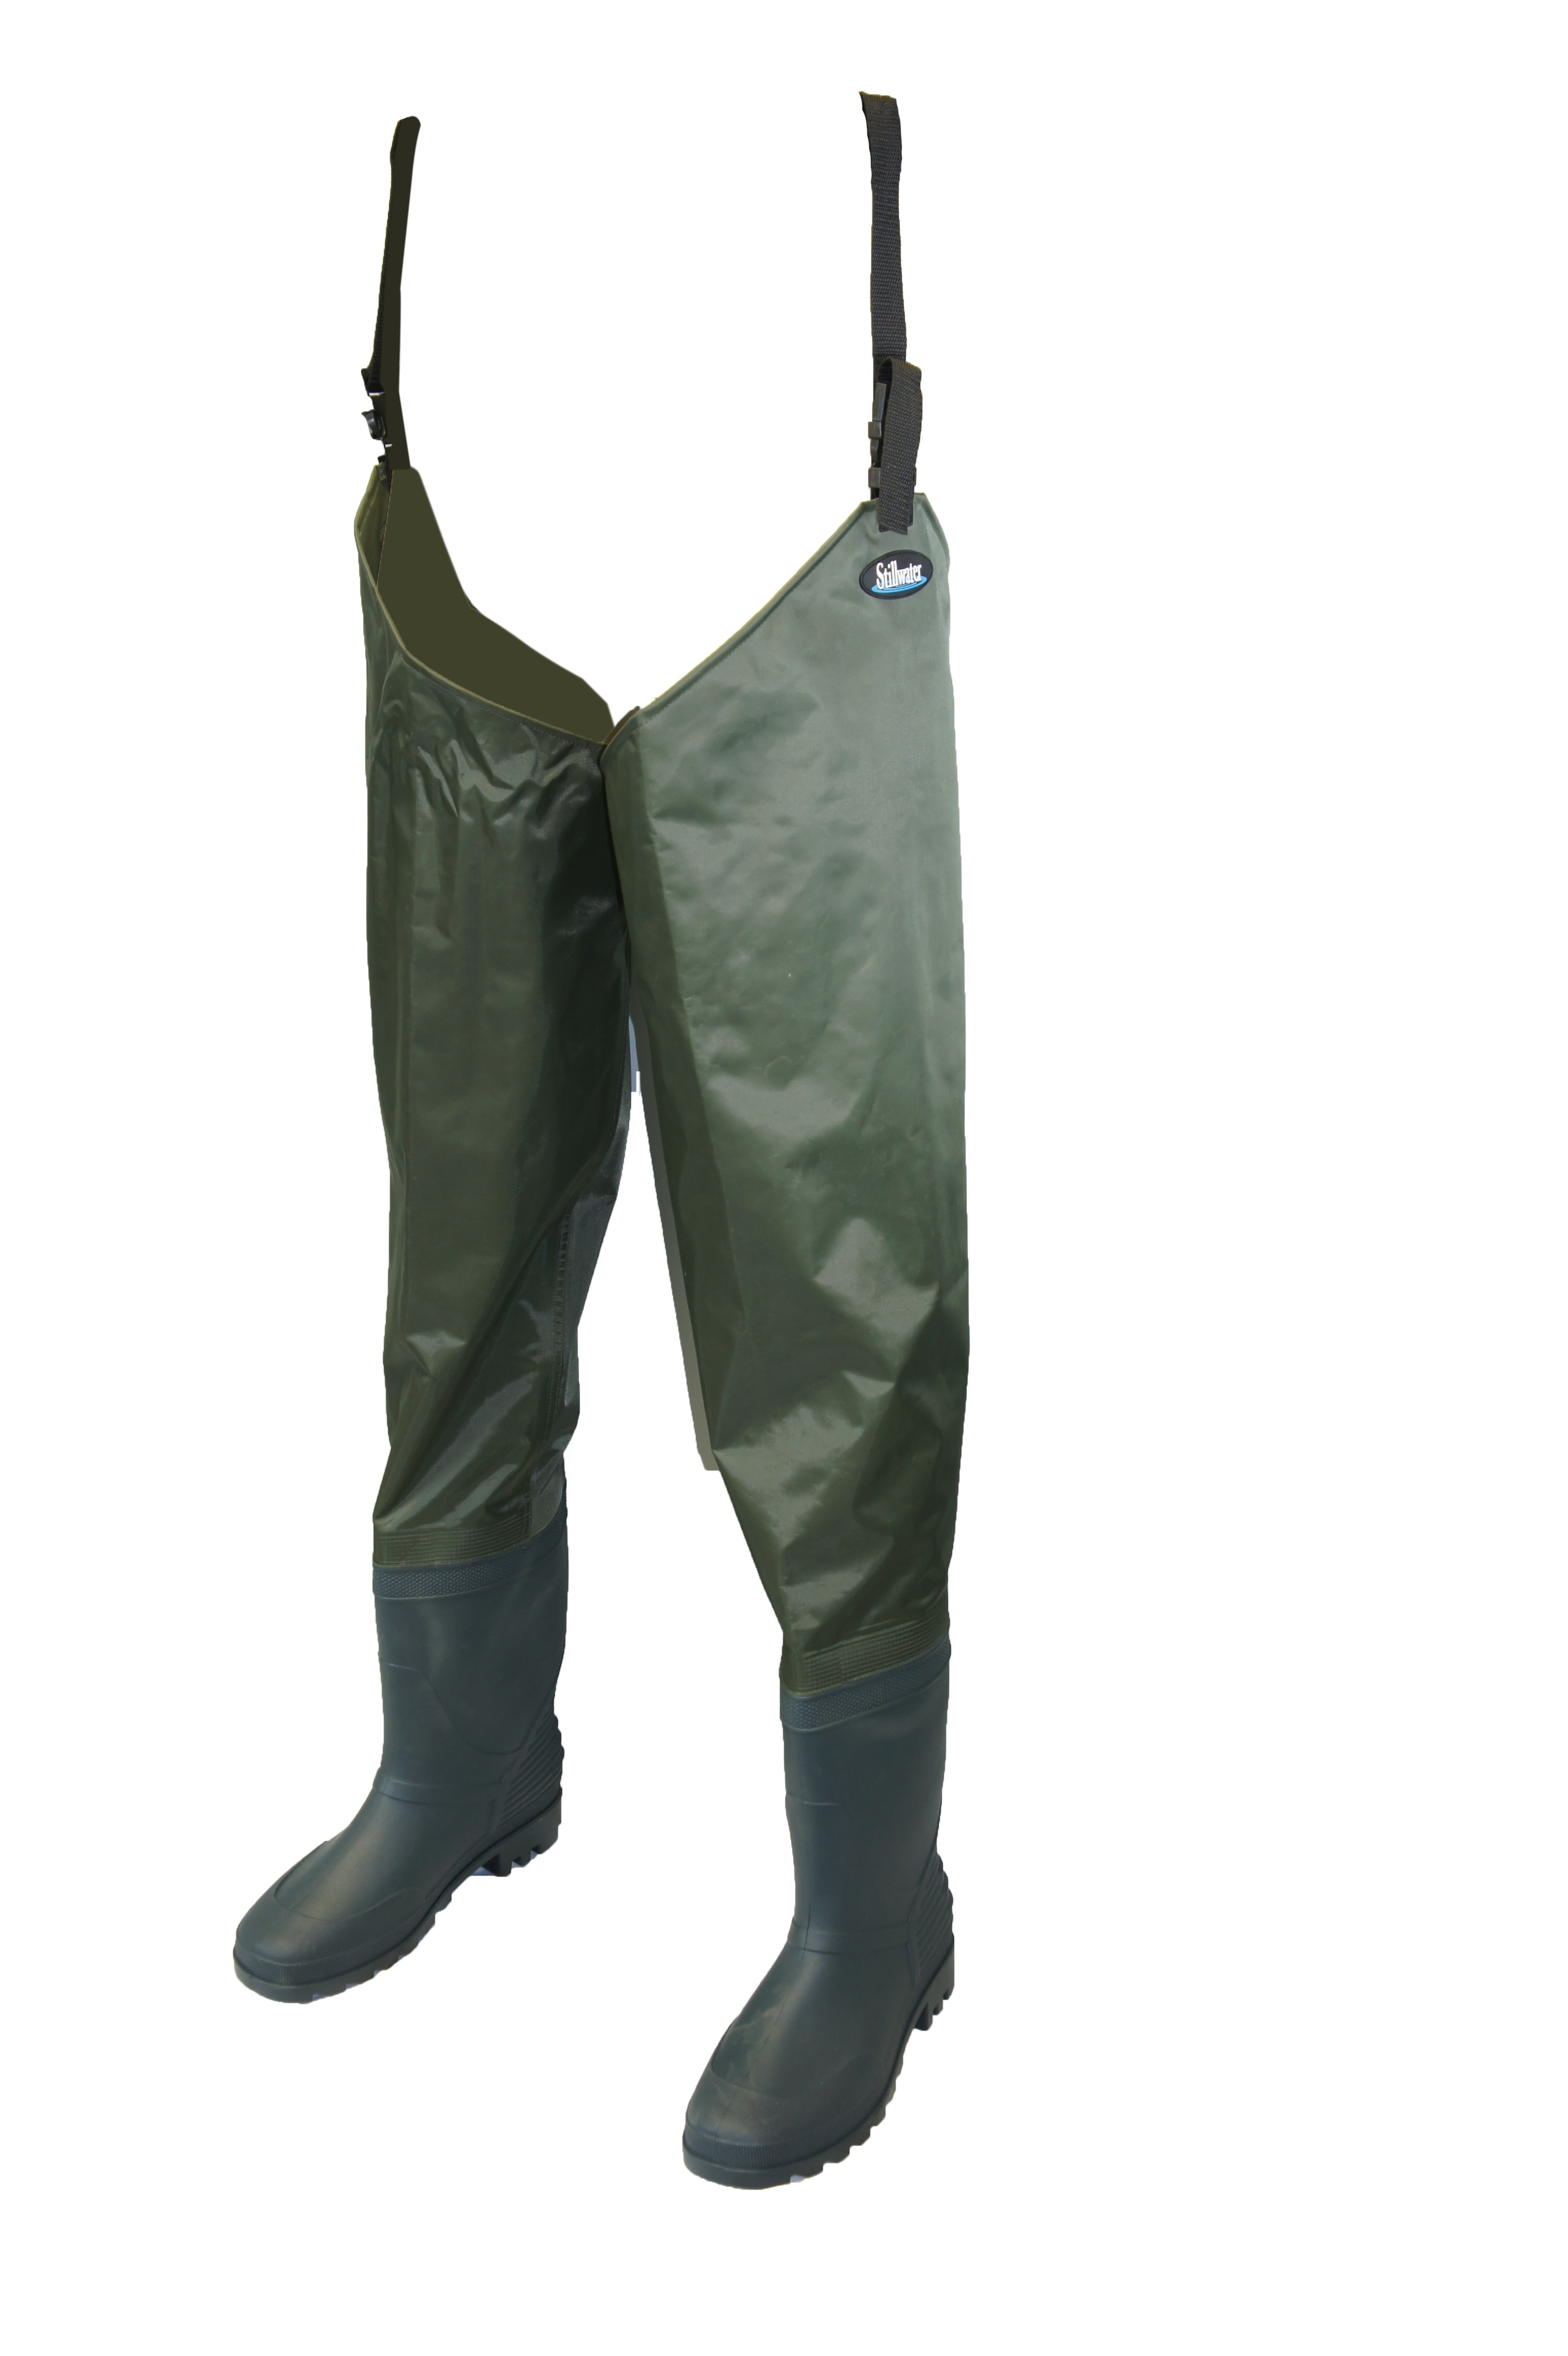 Stillwater classic pvc bootfoot thigh waders glasgow for Best fly fishing waders